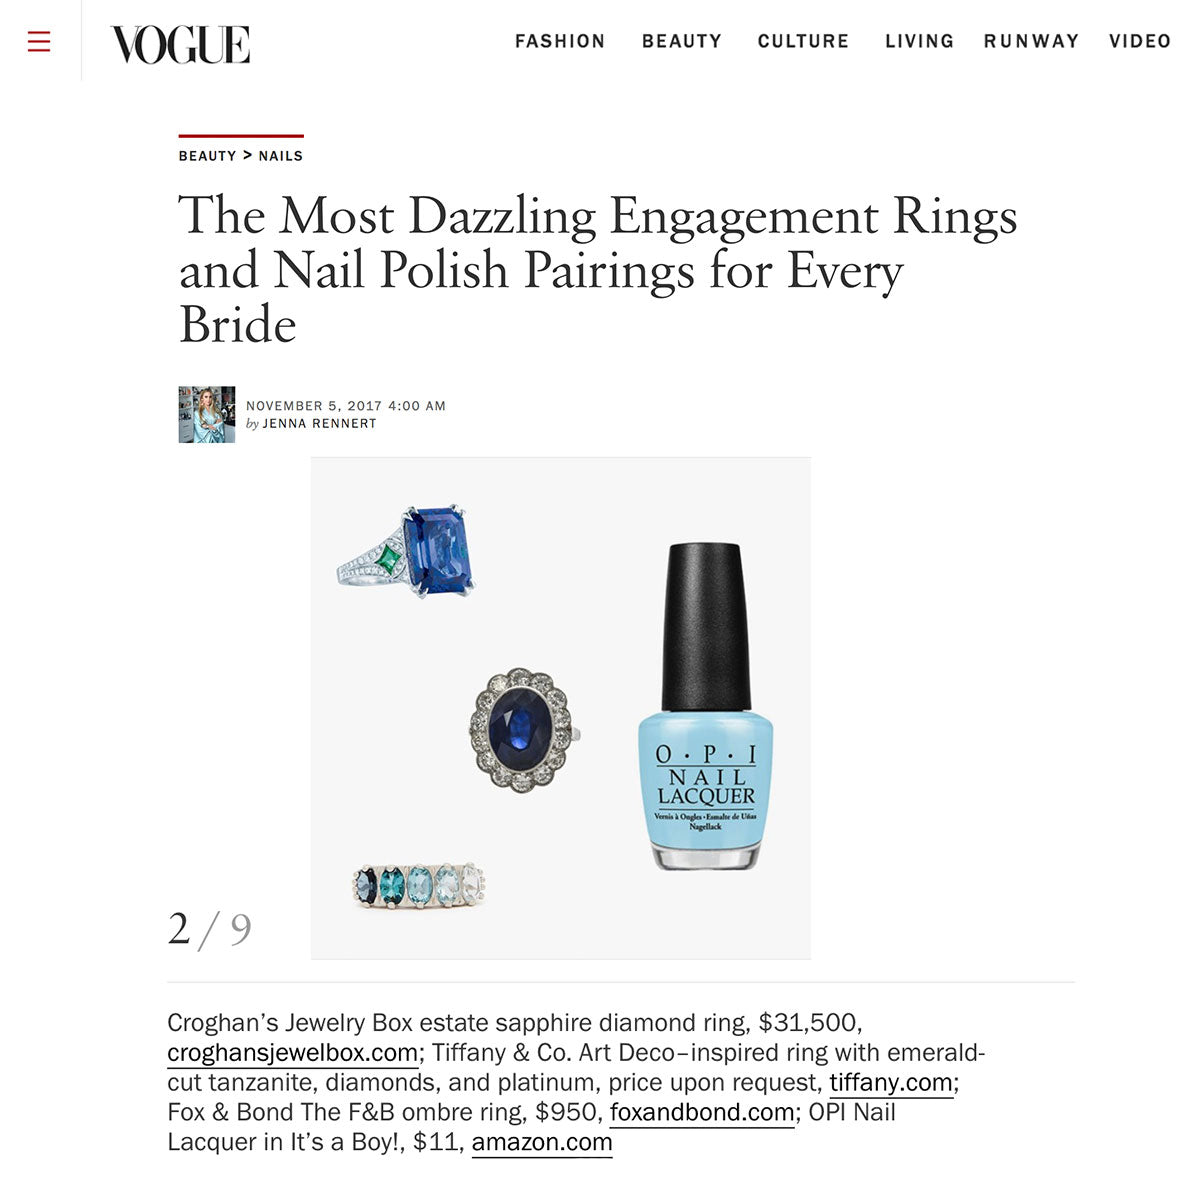 Vogue.com: The Most Dazzling Engagement Rings and Nail Polish Pairings for Every Bride